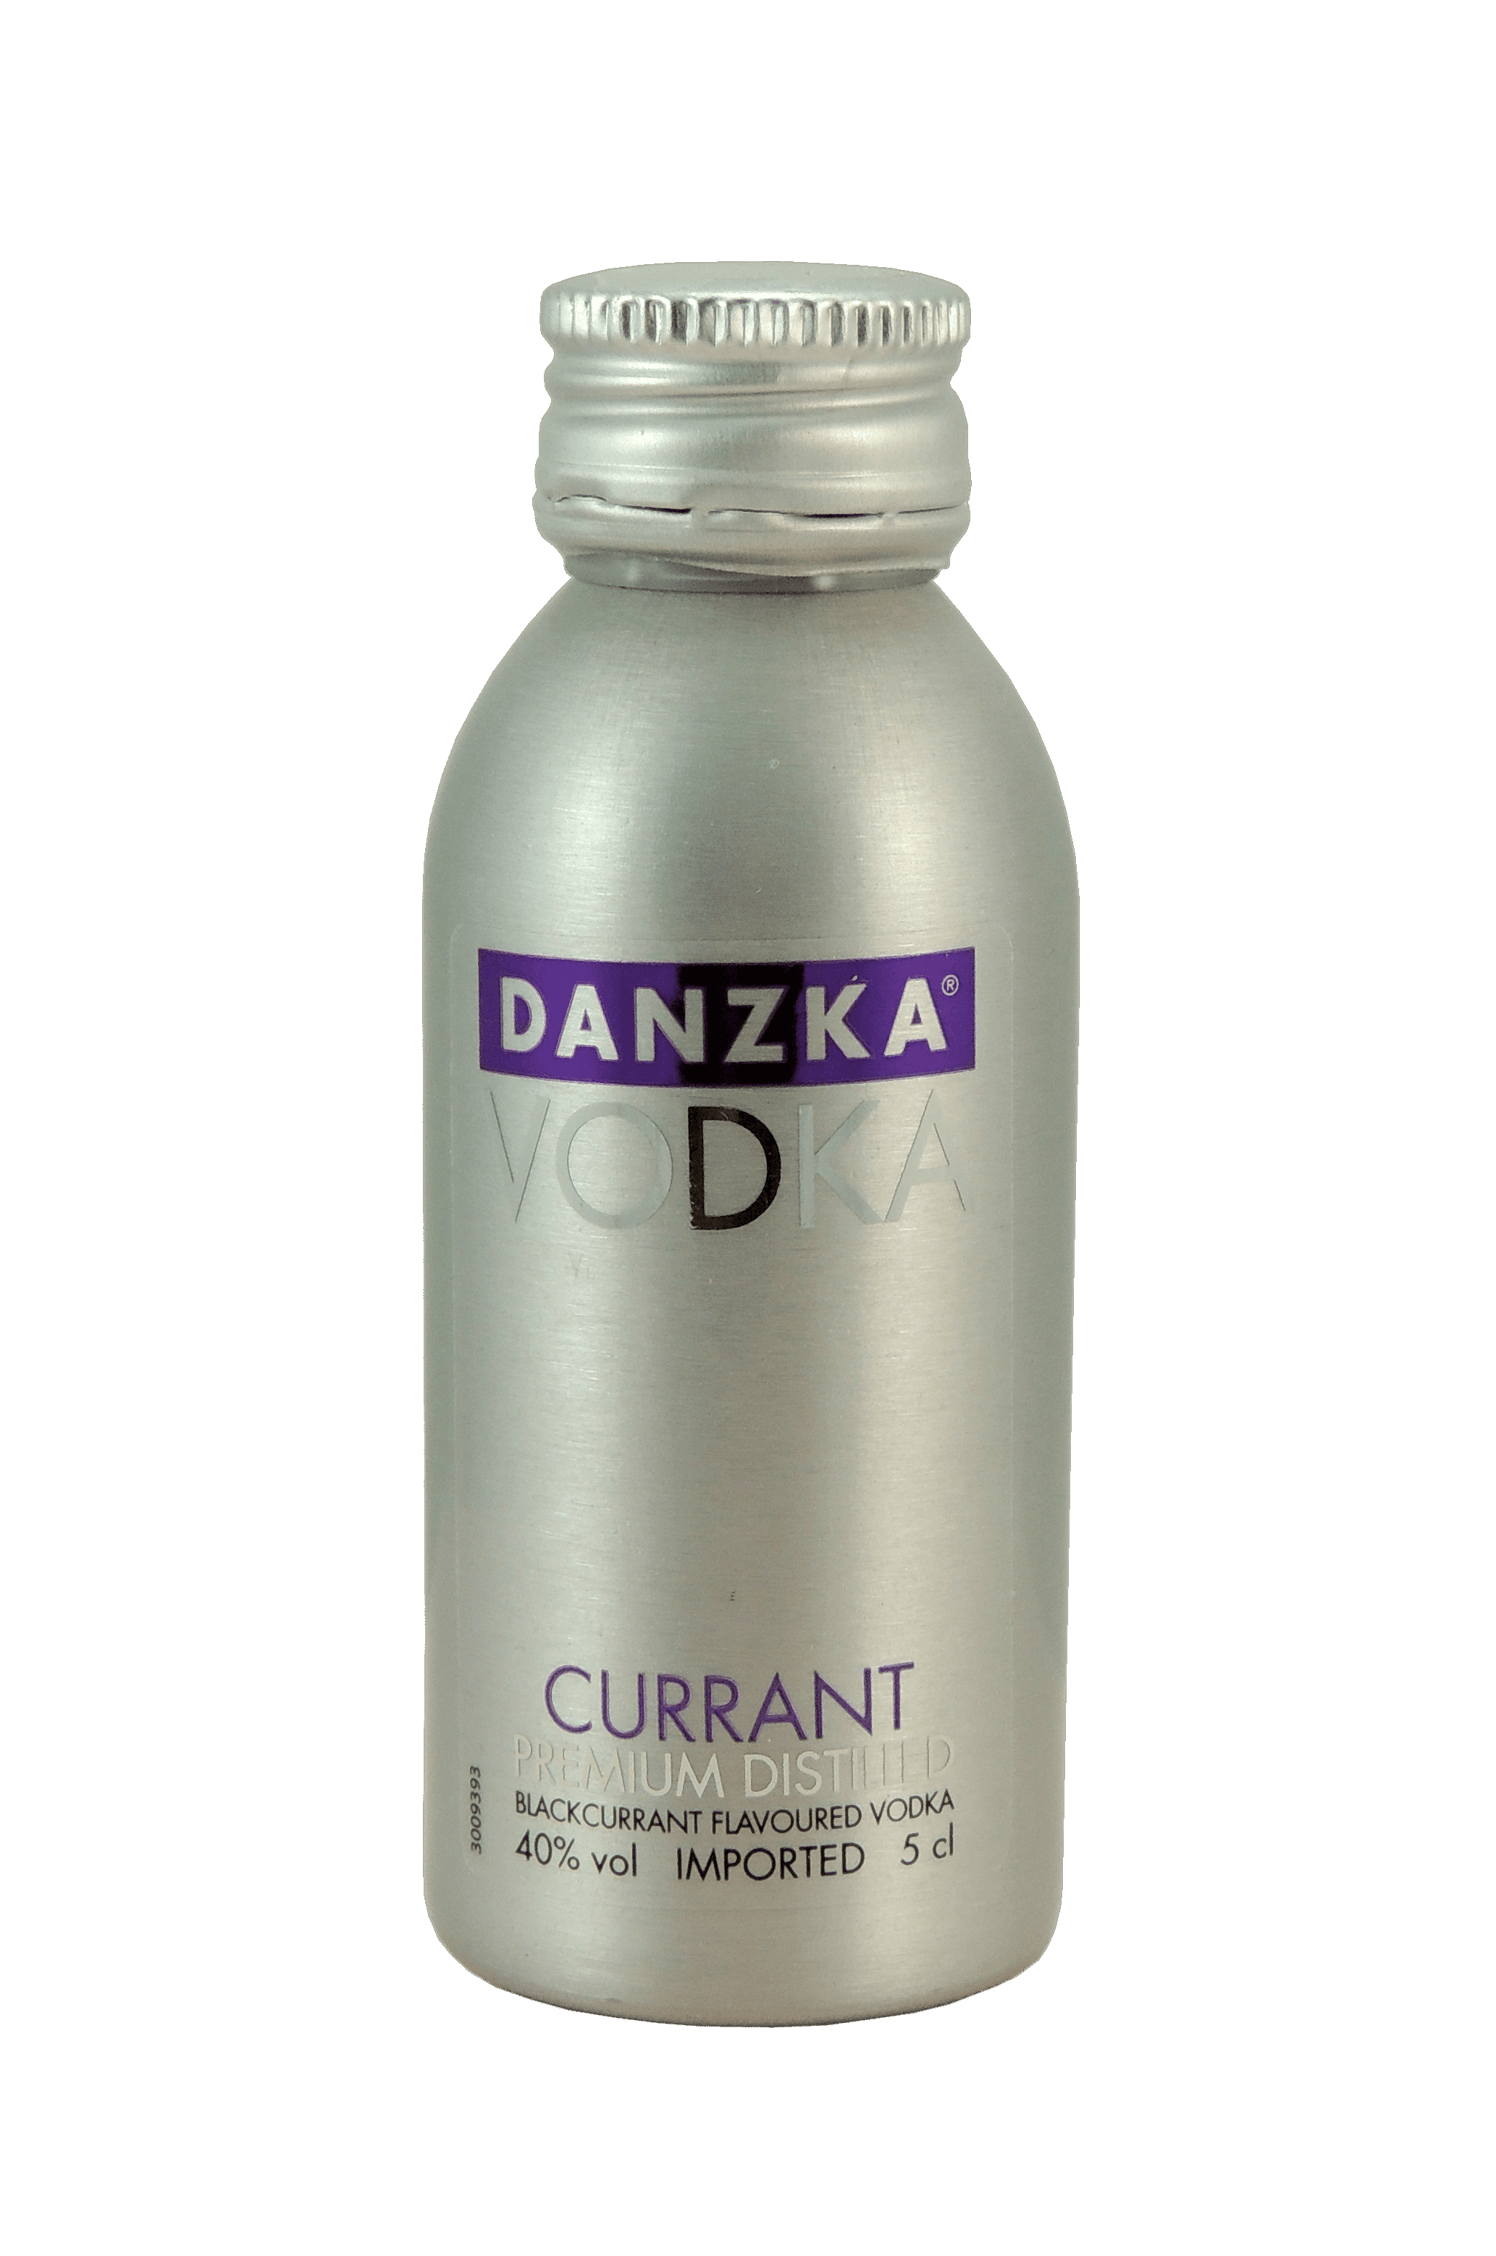 Danzka Vodka Currant